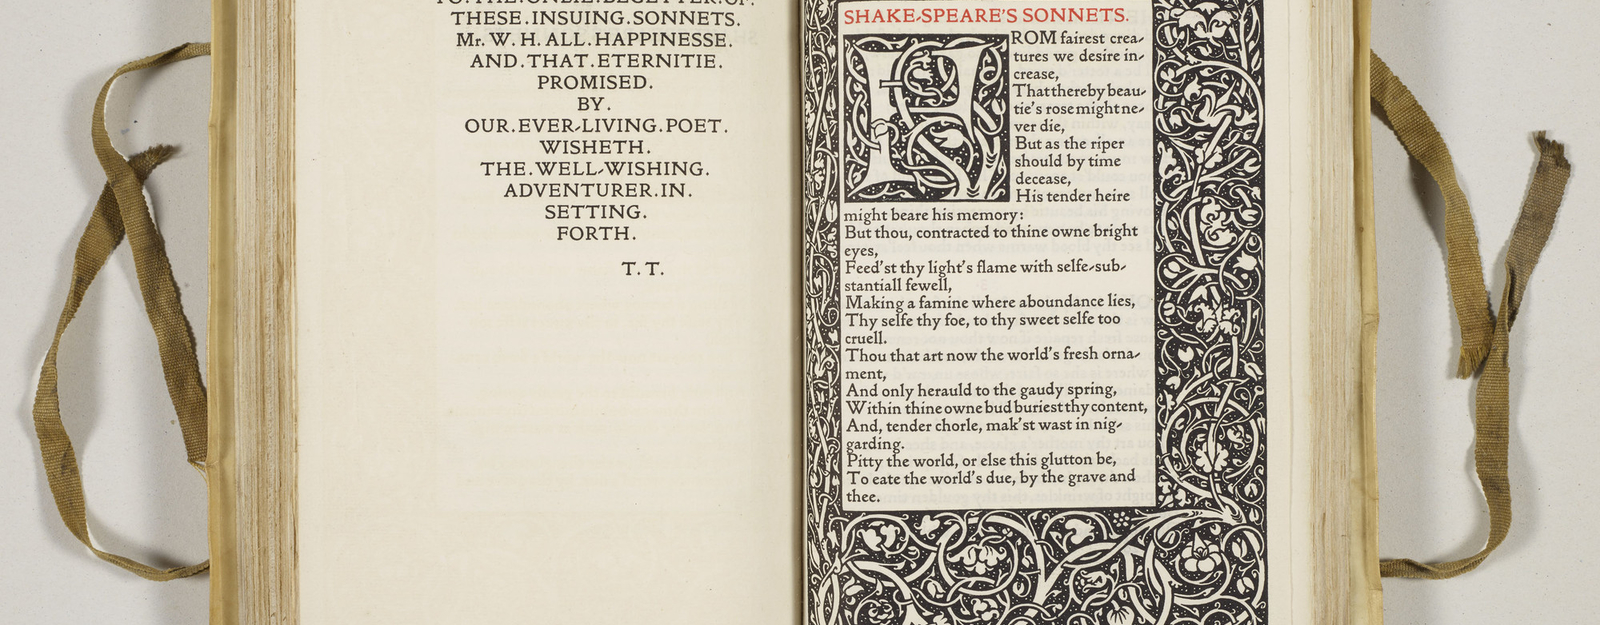 Amongst the more modern holdings of Shakespeare's works in the Royal Library is this Kelmscott Press edition of the poems and sonnets. The Kelmscott Press, run by the arts-and-crafts designer William Morris (1834–96), aimed to produce printed